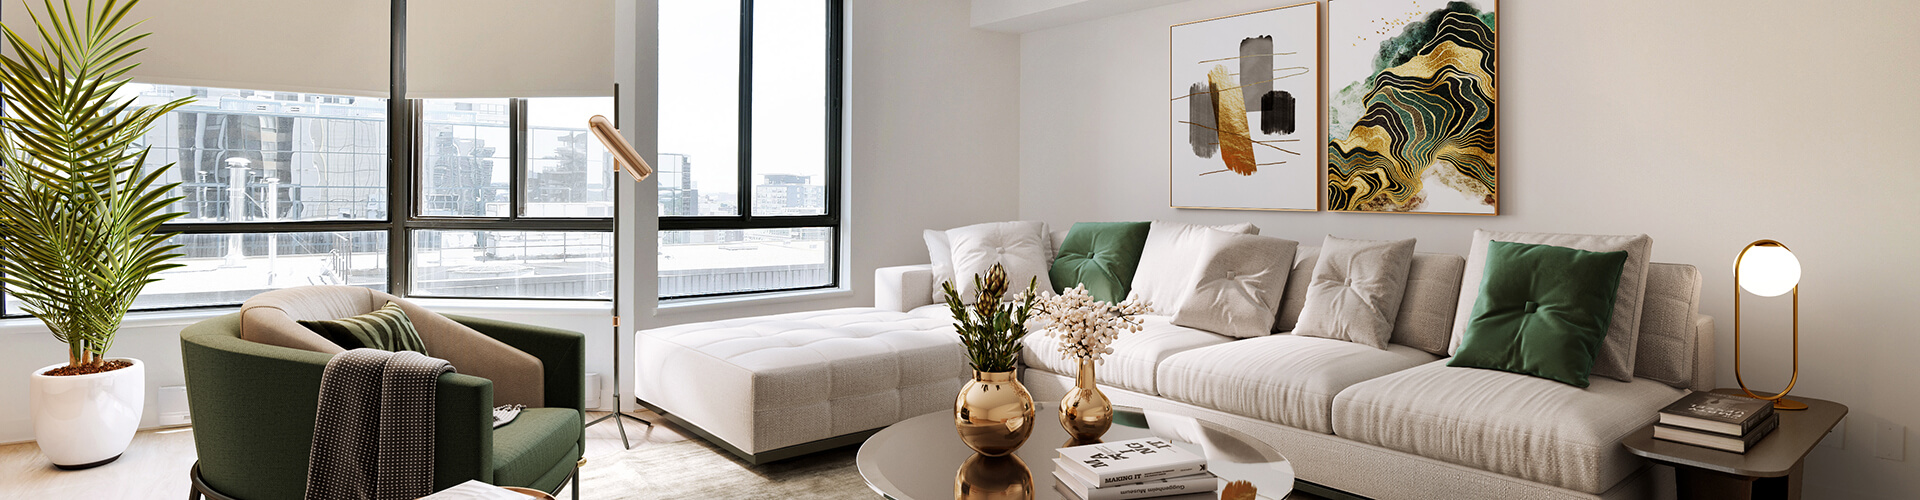 Spacious living room at The Carlisle Apartments in Ottawa. Rent with Minto Apartments.